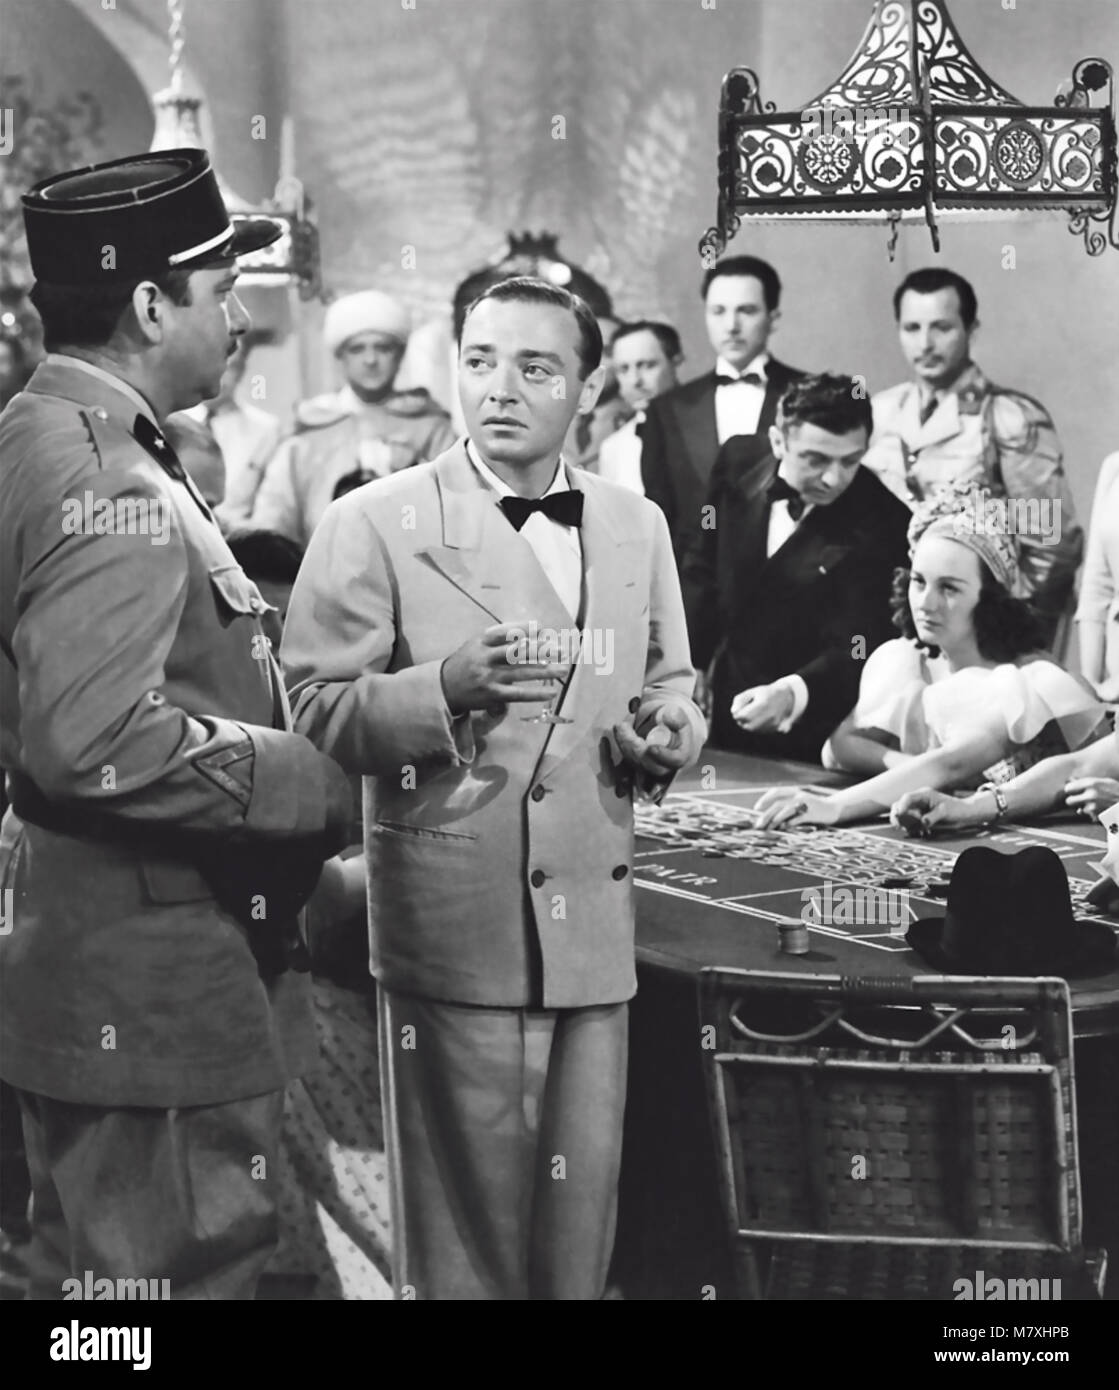 CASABLANCA 1942 Warner Bros film with from left: Claude Rains and  Peter Lorre - Stock Image